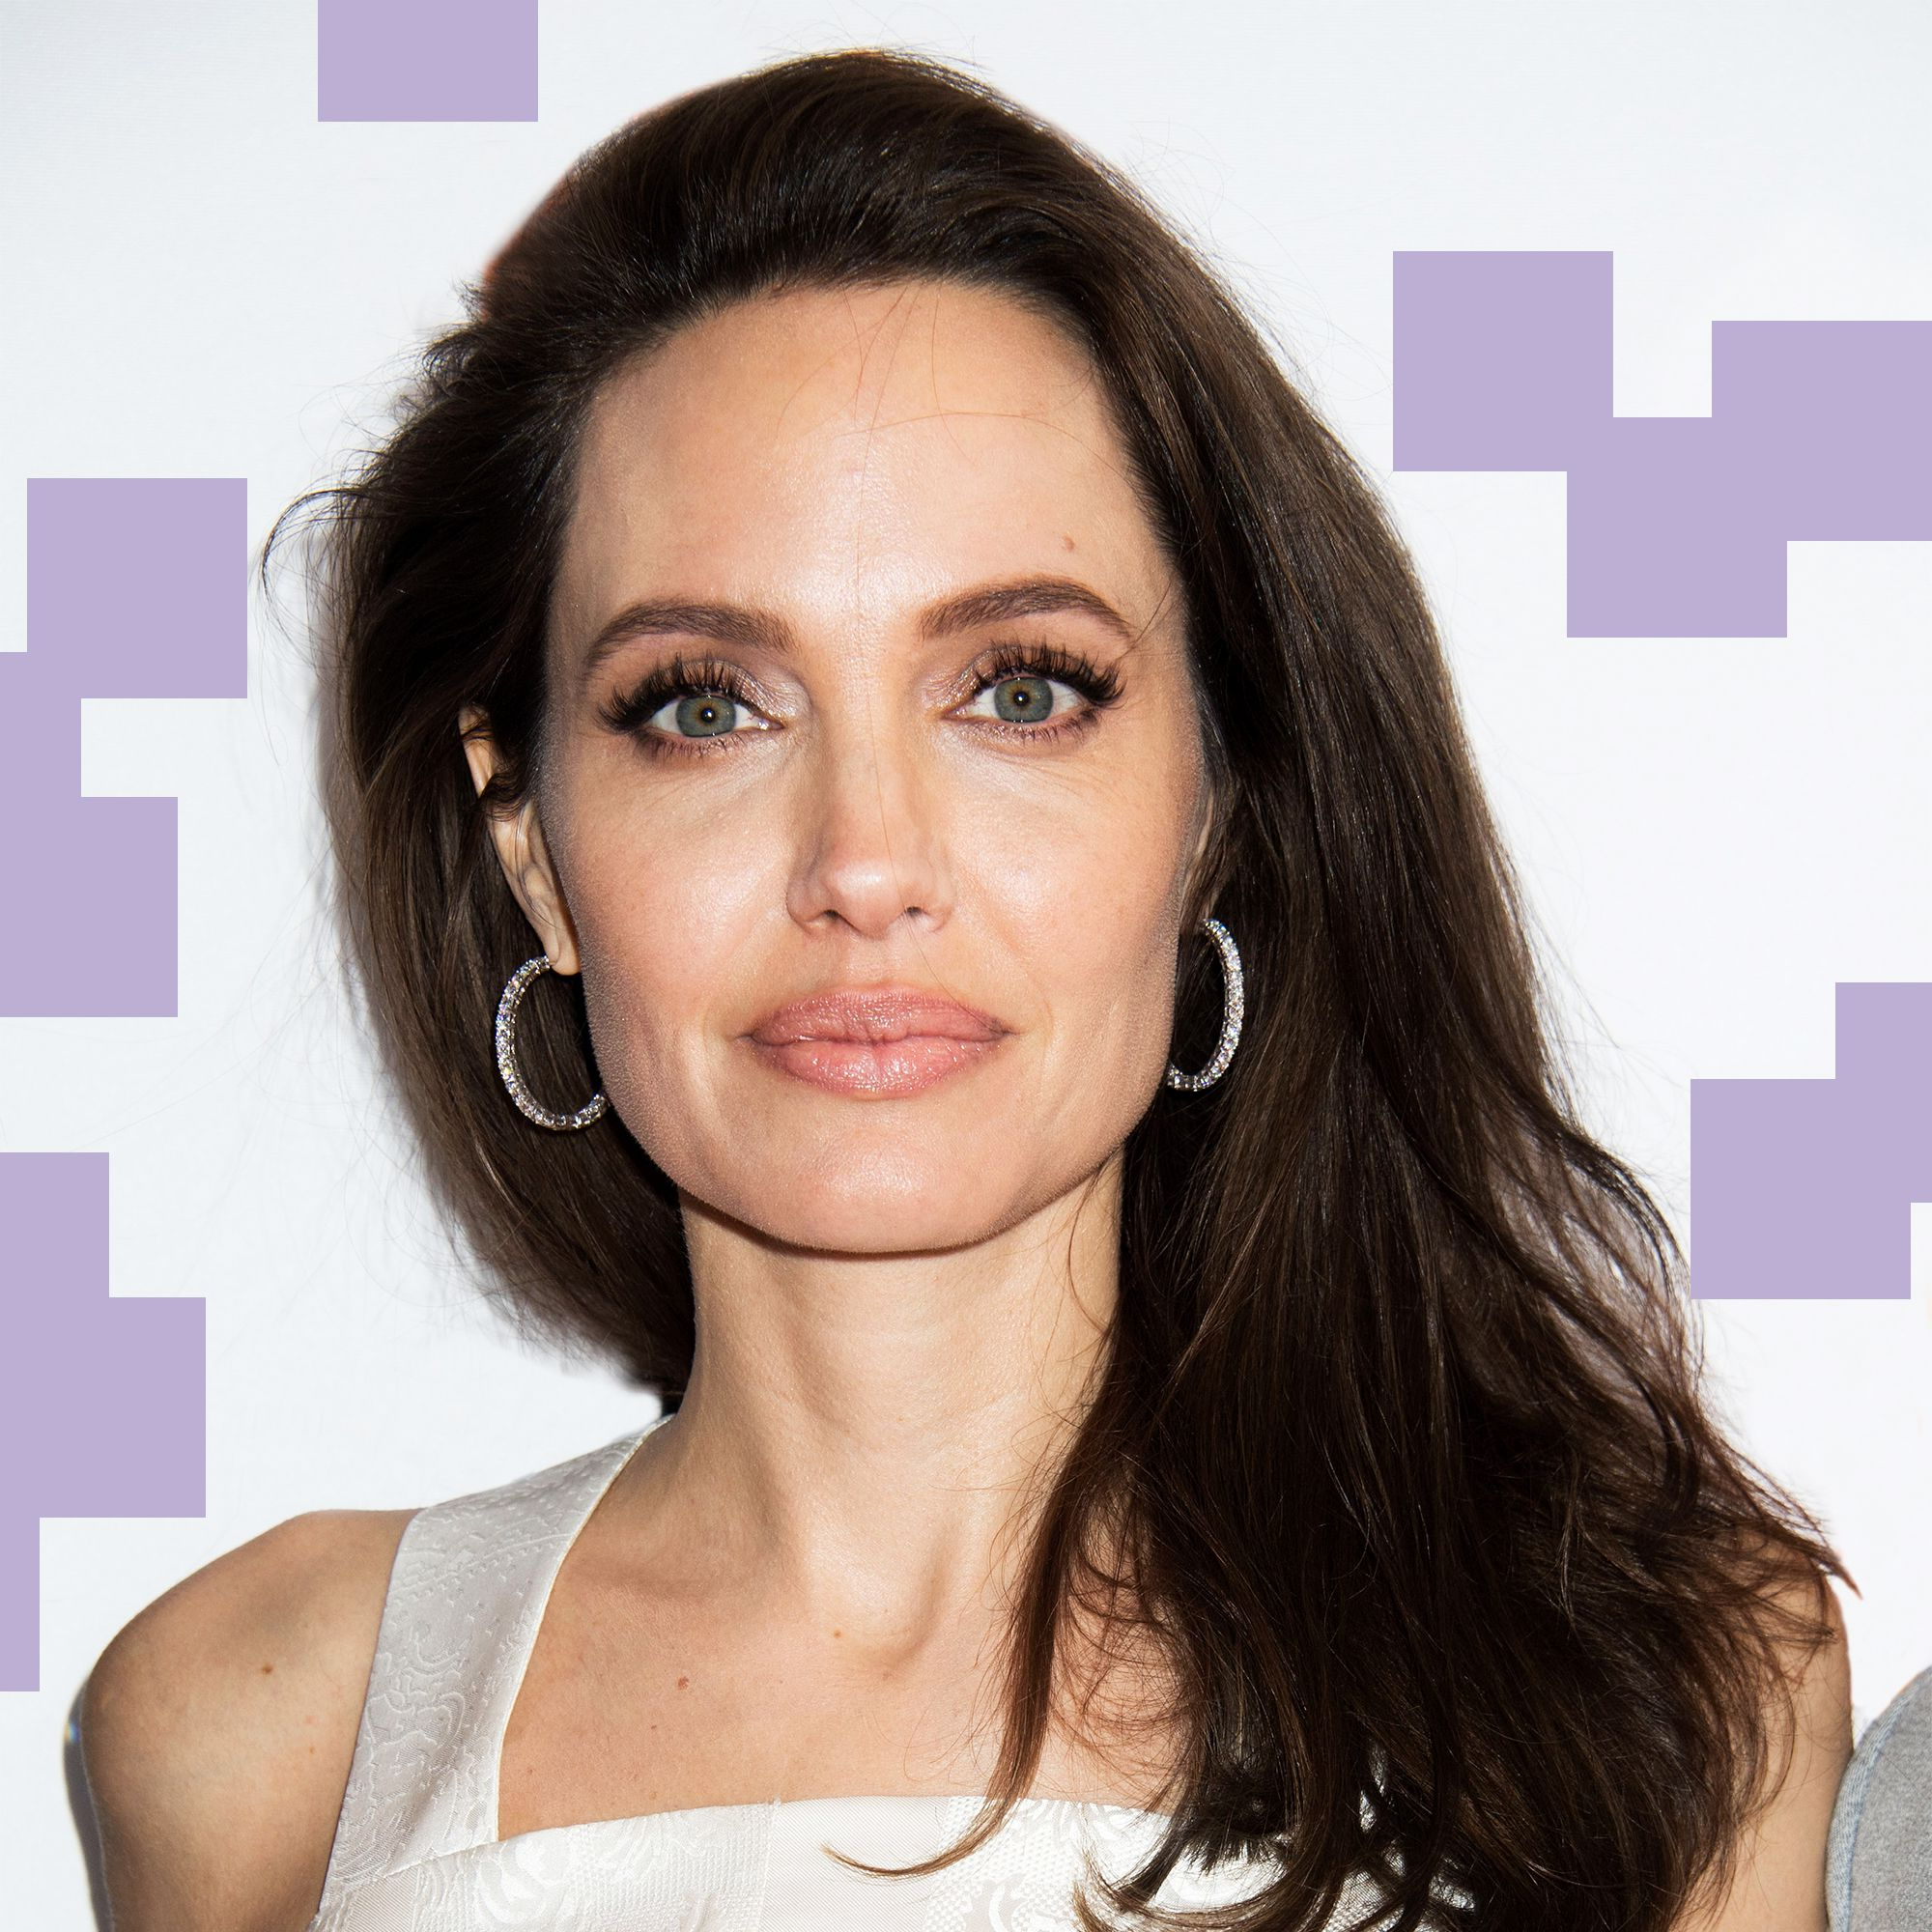 Angelina Jolie Haircut Blunt Trim Fall Trends Intended For Angelina Jolie Short Hairstyles (Gallery 11 of 25)